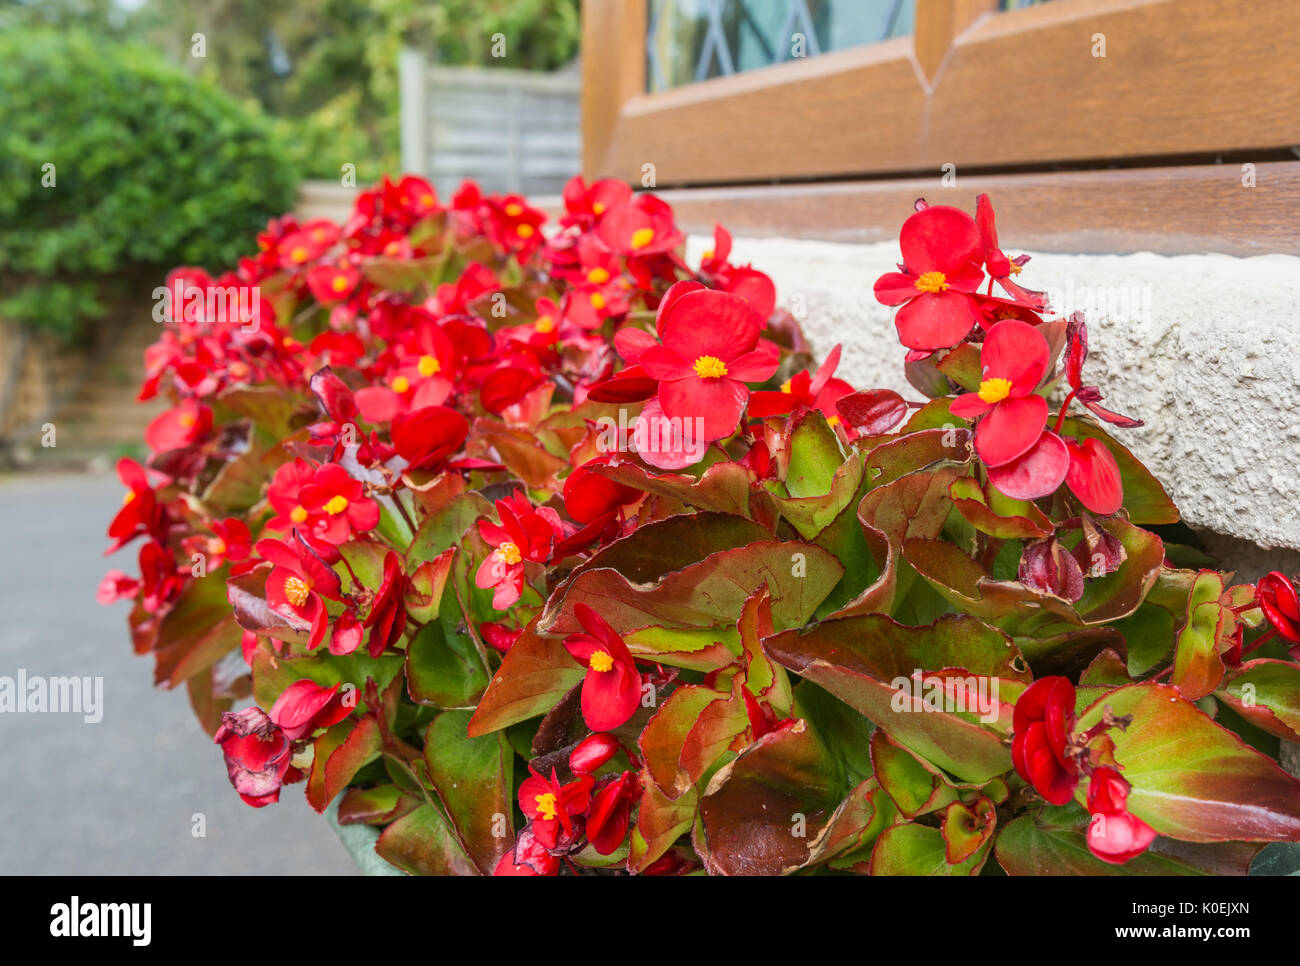 Wax Begonia plant (Begonia semperflorens) bedding variety flowering in a flower box in mid Summer in West Sussex, England, UK. Red Wax Begonia plant. - Stock Image